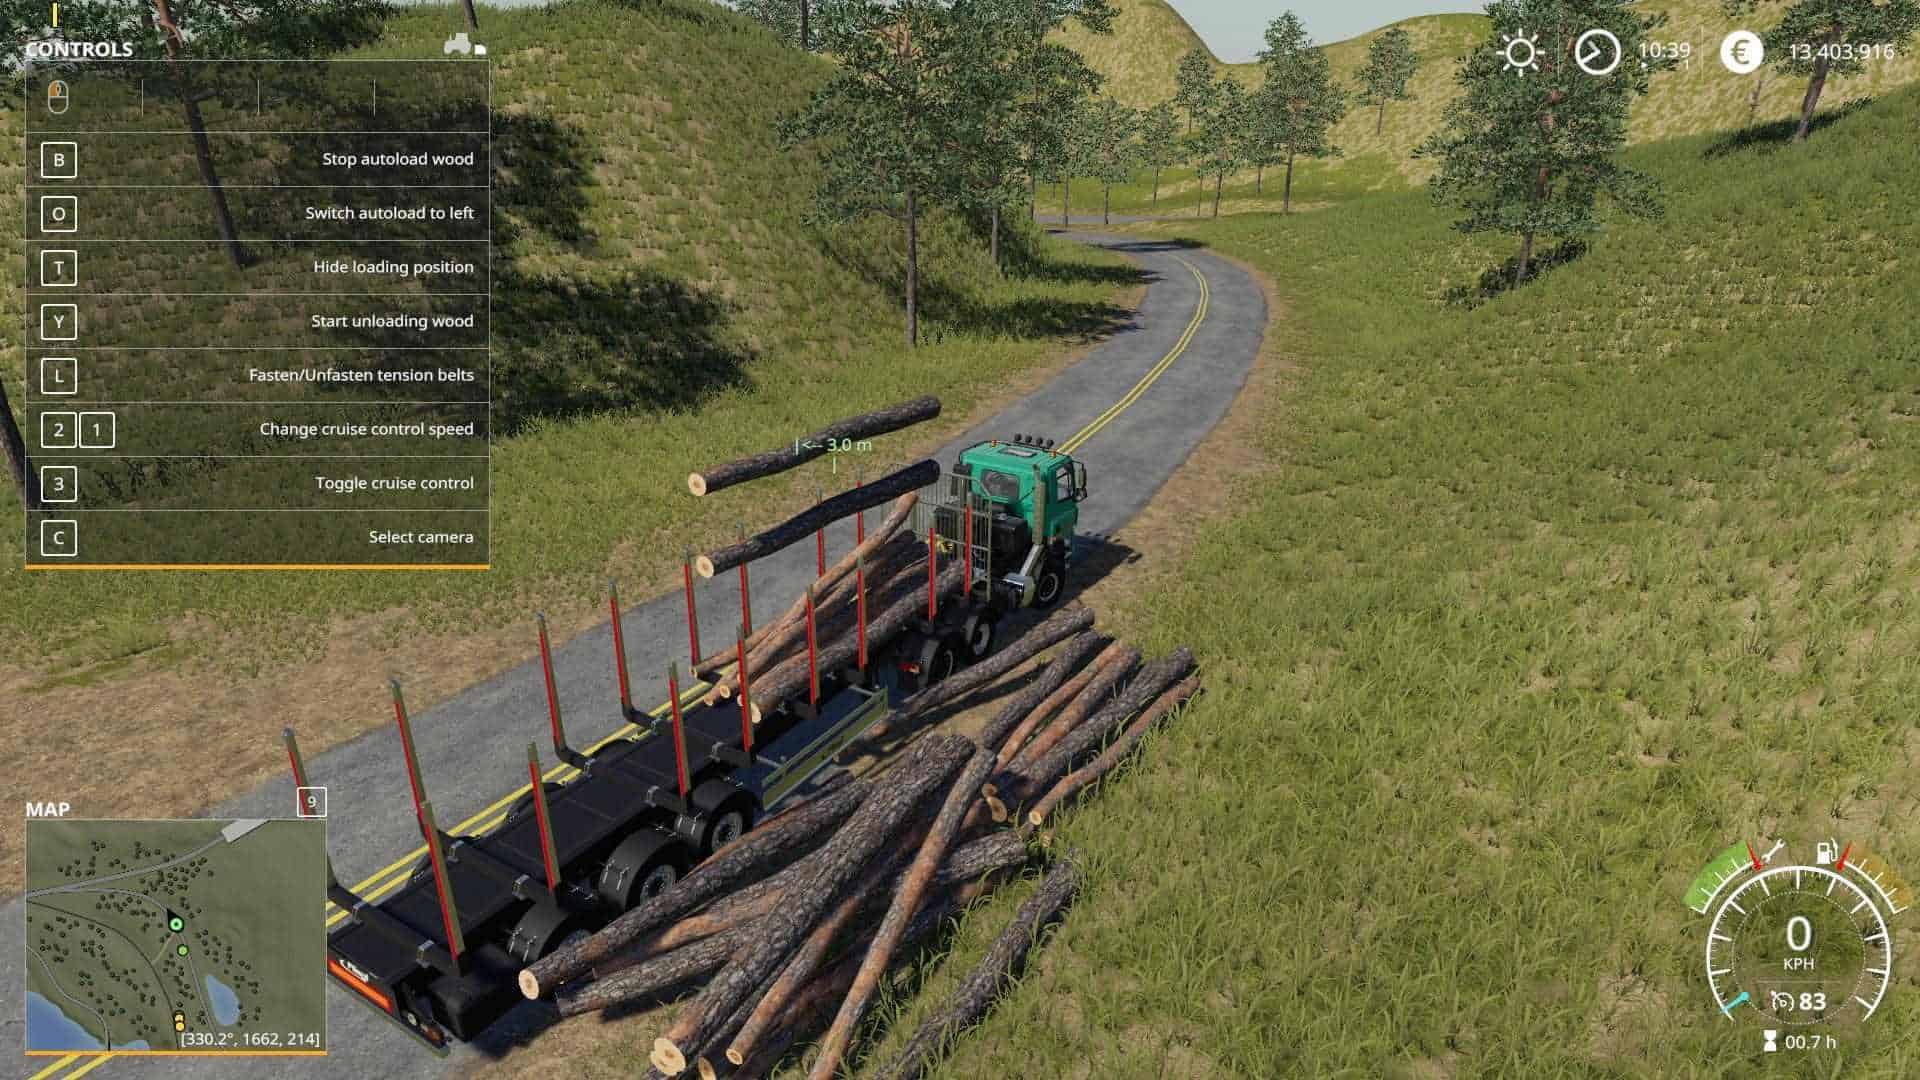 Fliegl Timber Runner With Autoload Wood v1 0 Mod - Farming